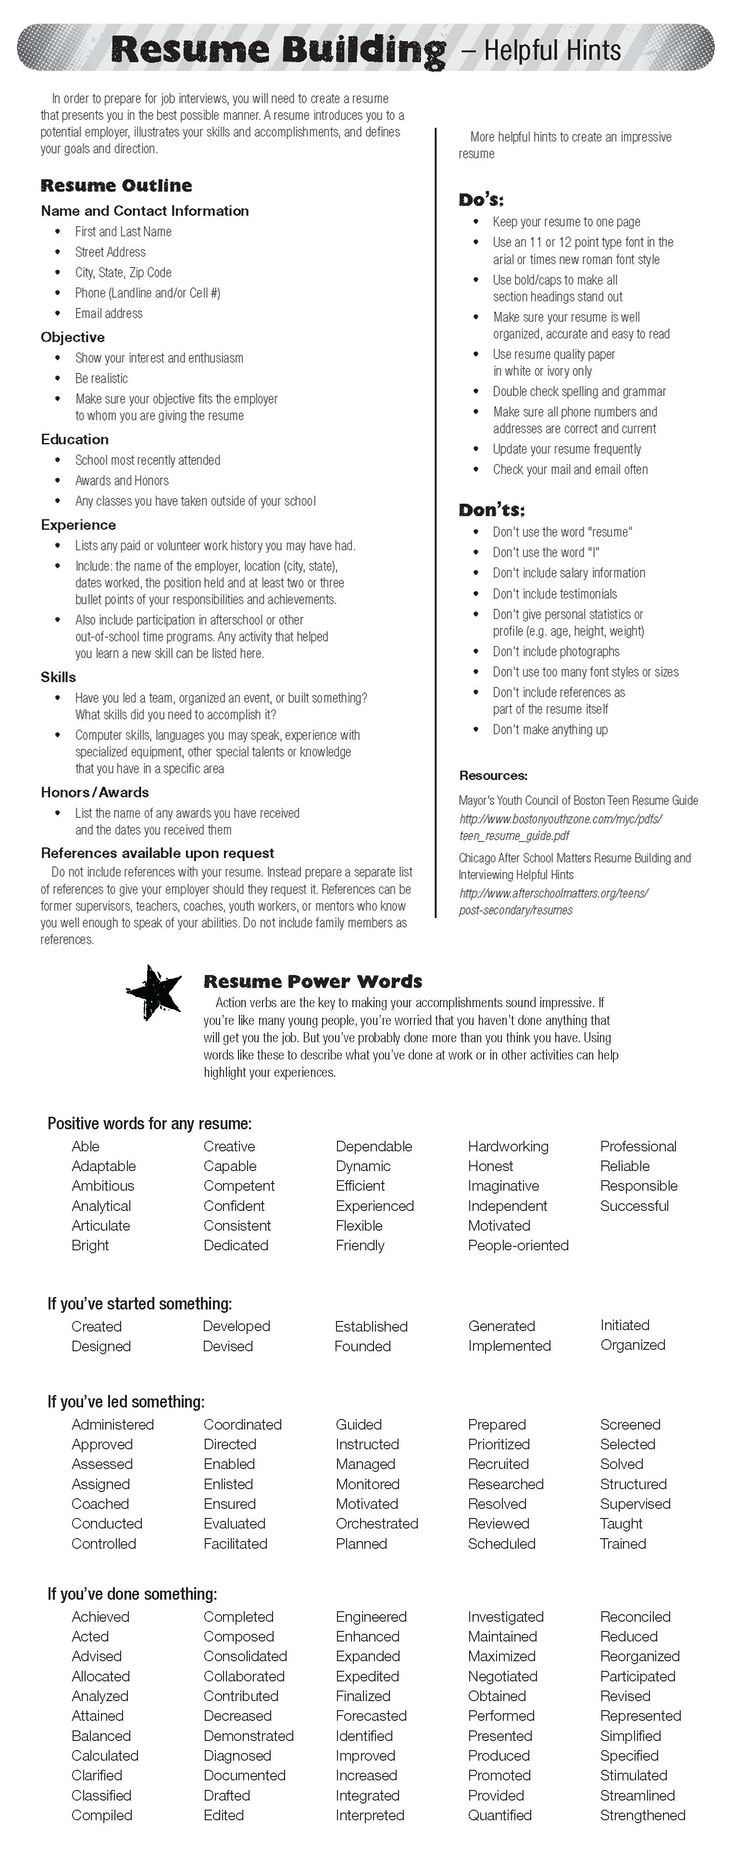 Opposenewapstandardsus  Pretty  Ideas About Resume On Pinterest  Cv Format Resume Cv And  With Luxury  Ideas About Resume On Pinterest  Cv Format Resume Cv And Resume Templates With Astounding Business Management Resume Also Sample Resume For High School Students In Addition Medical Resume Templates And Medical Administrative Assistant Resume As Well As Bank Teller Resume Sample Additionally Healthcare Administration Resume From Pinterestcom With Opposenewapstandardsus  Luxury  Ideas About Resume On Pinterest  Cv Format Resume Cv And  With Astounding  Ideas About Resume On Pinterest  Cv Format Resume Cv And Resume Templates And Pretty Business Management Resume Also Sample Resume For High School Students In Addition Medical Resume Templates From Pinterestcom